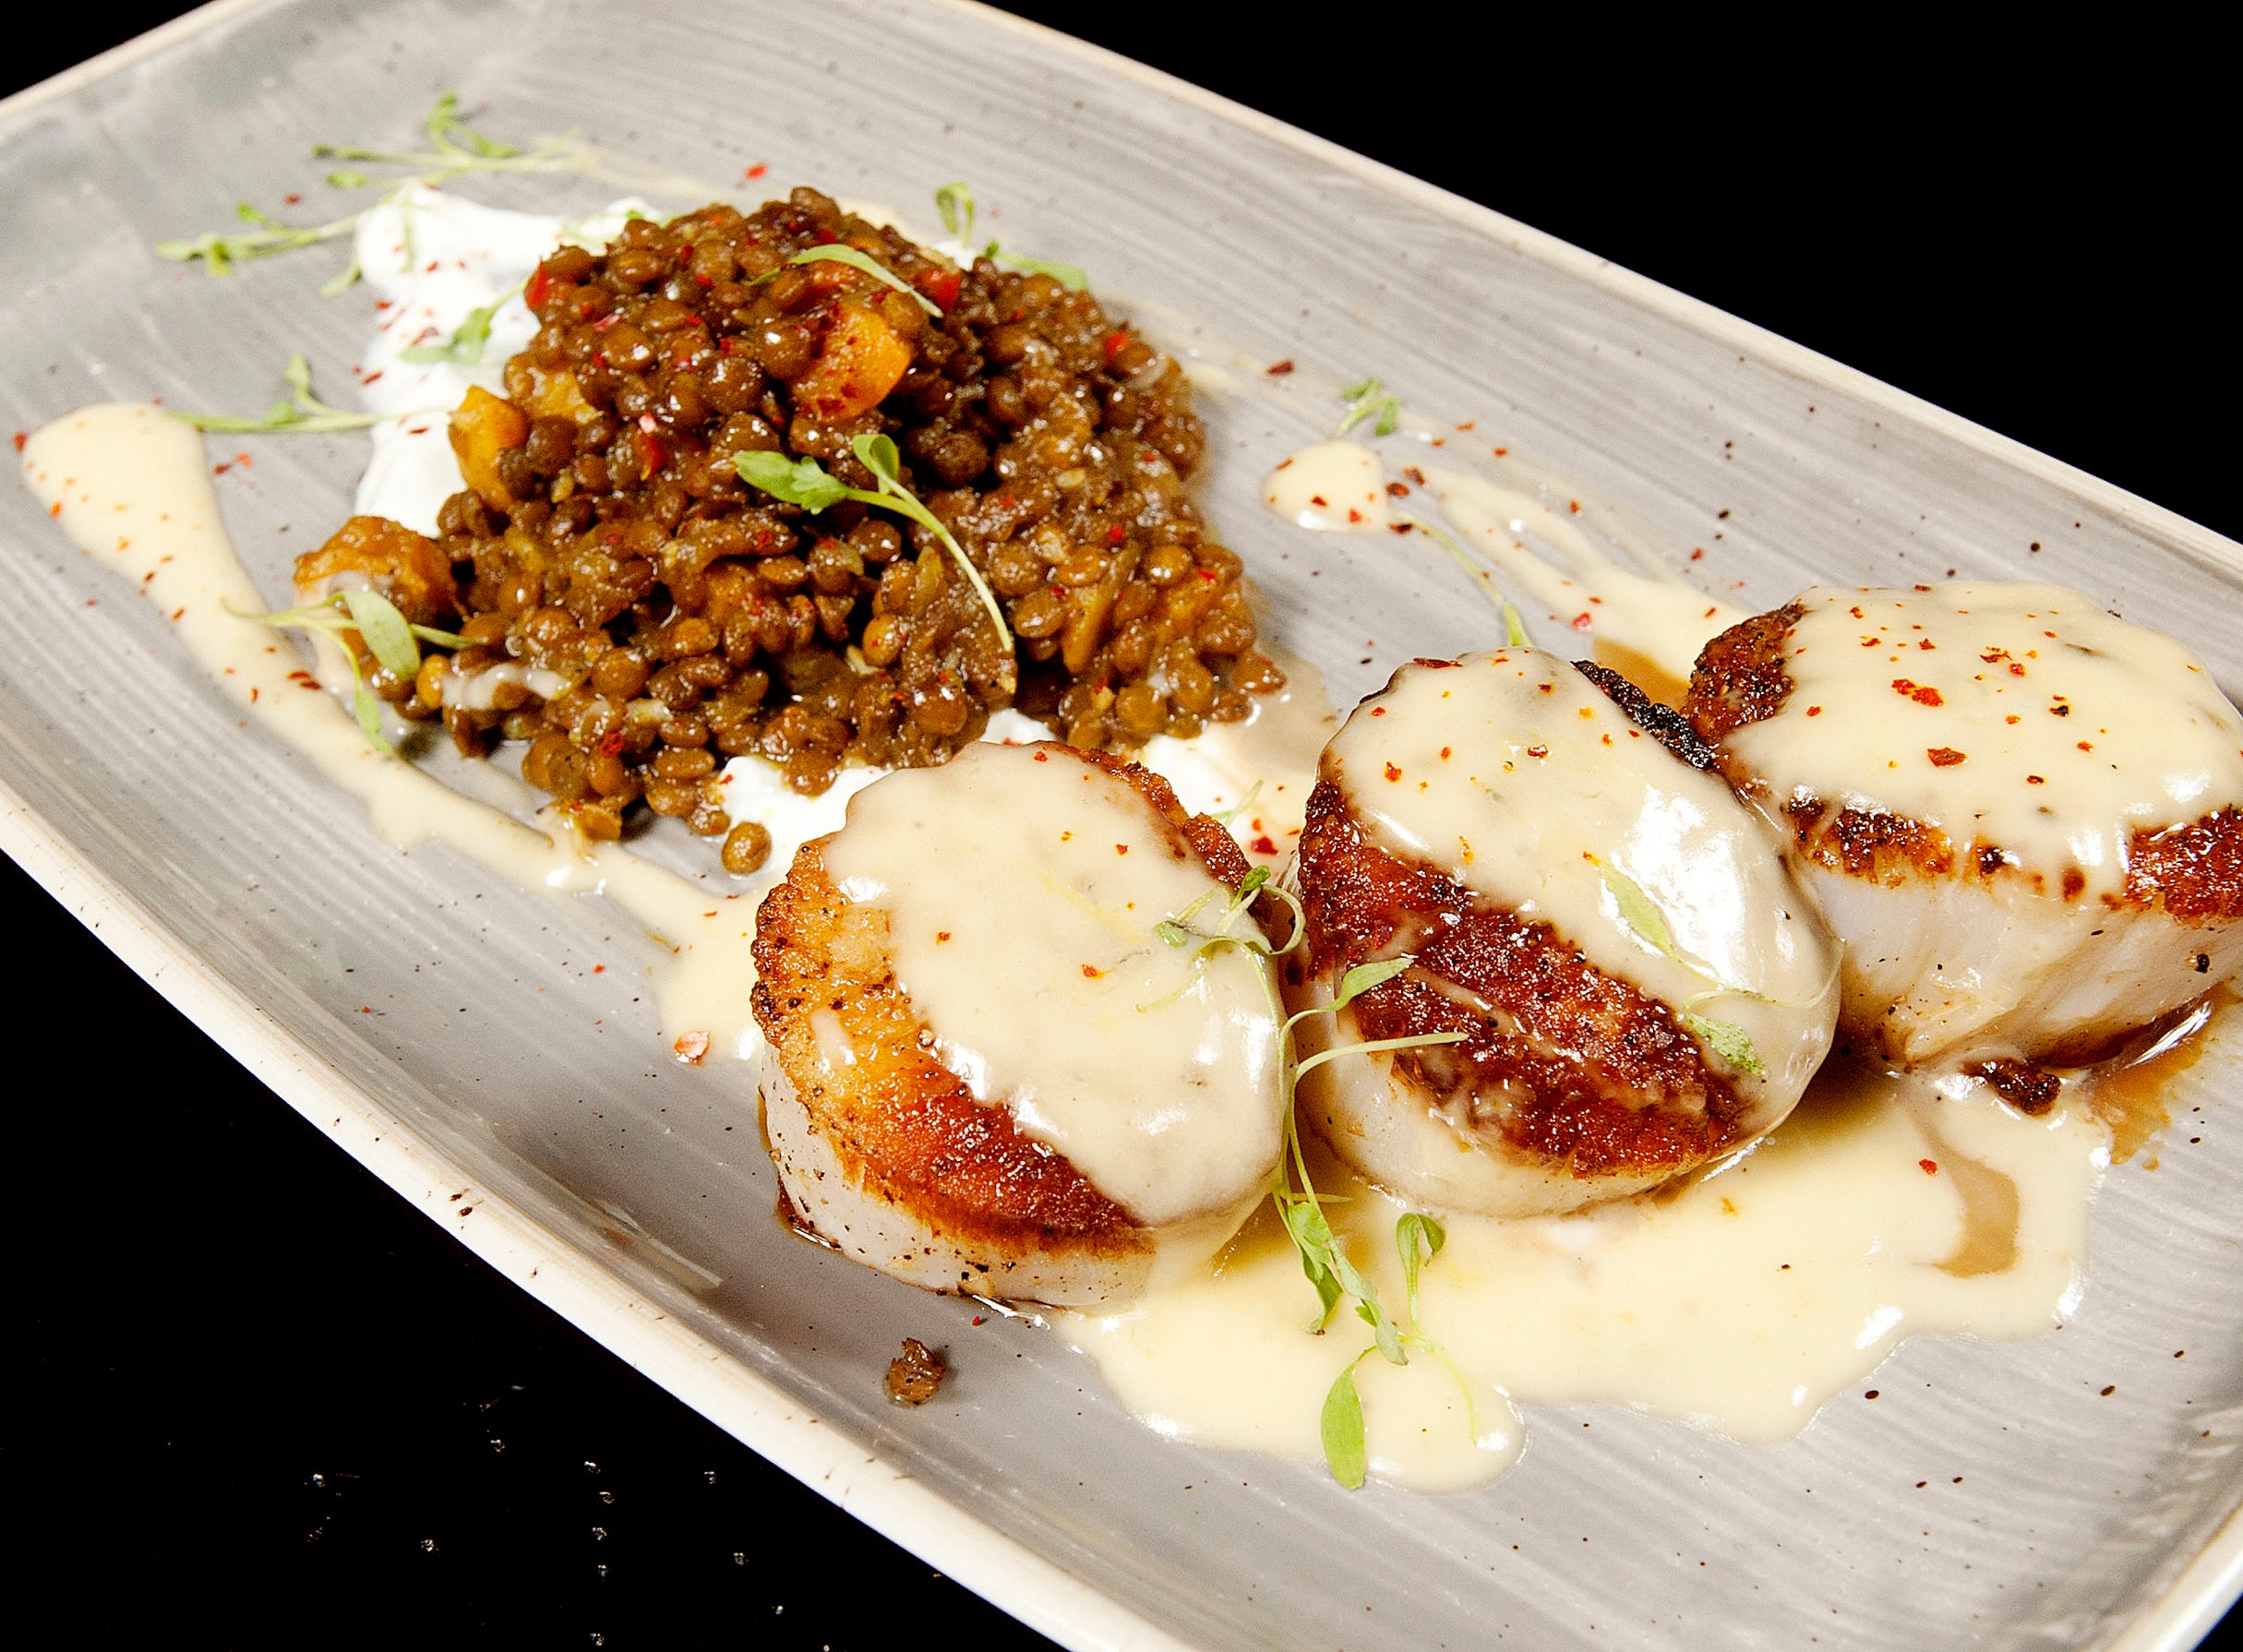 La Chasse Restaurant's seared sea scallops are toped with a lemongrass beurre blanc and are served with curried green French lentils and butternut squash on a cucumber garlic labneh .November 15, 2018